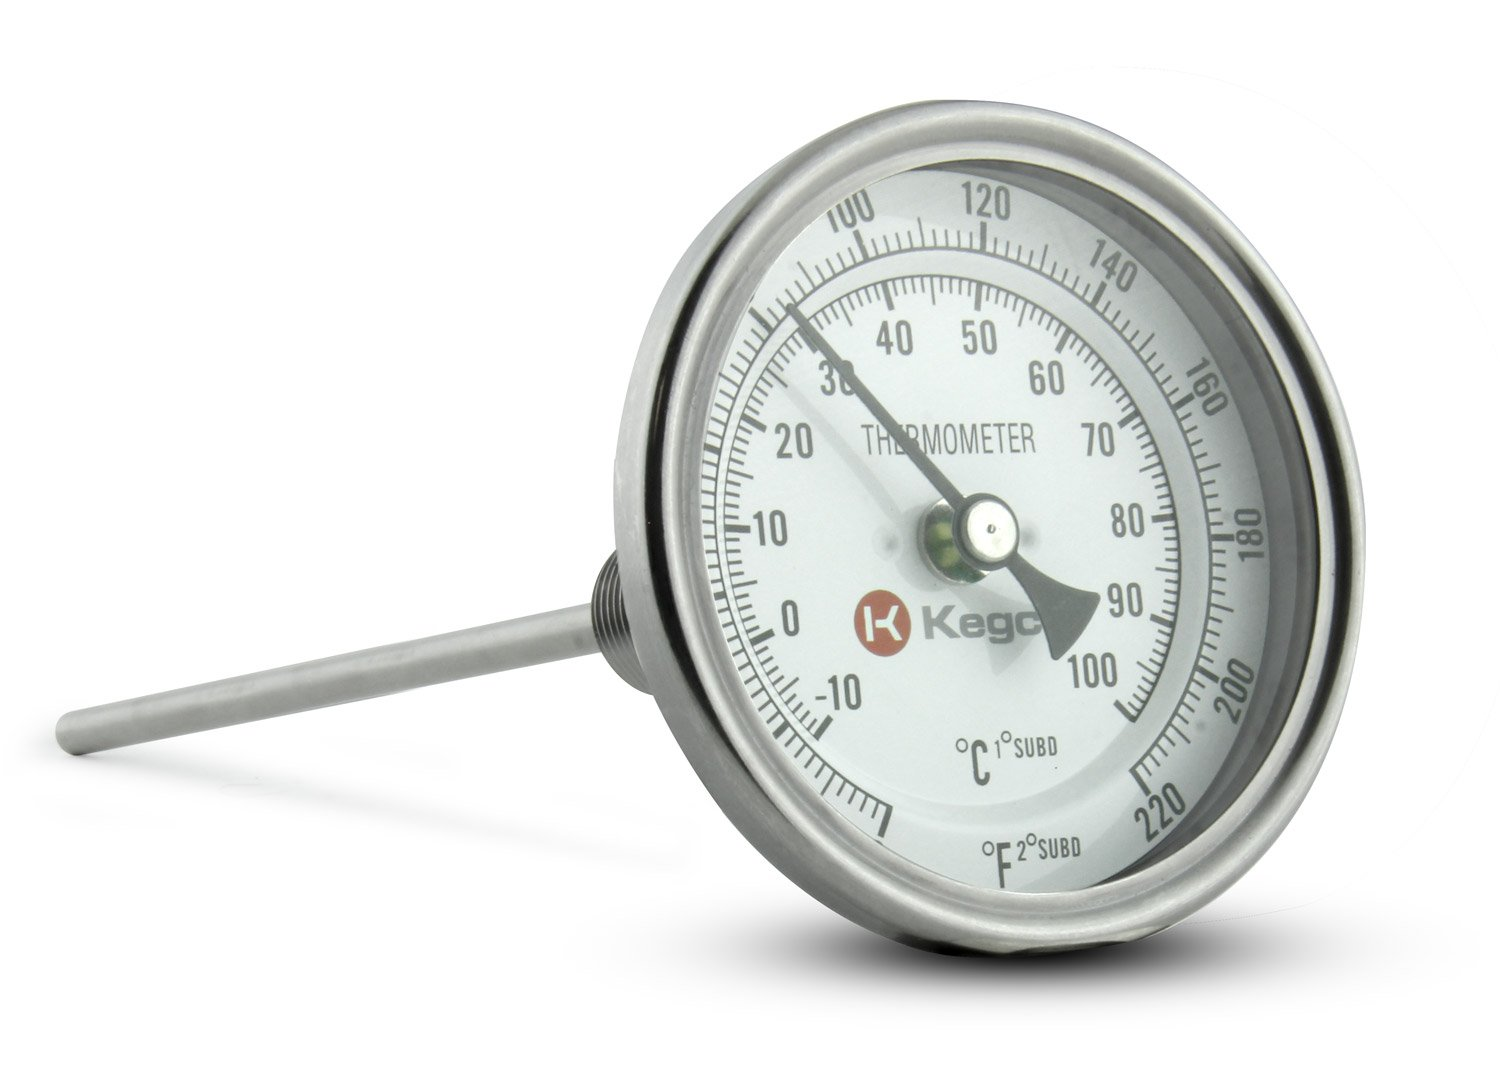 Kegco BPTHERM Homebrew Dial Thermometer for Home Brewing Pots